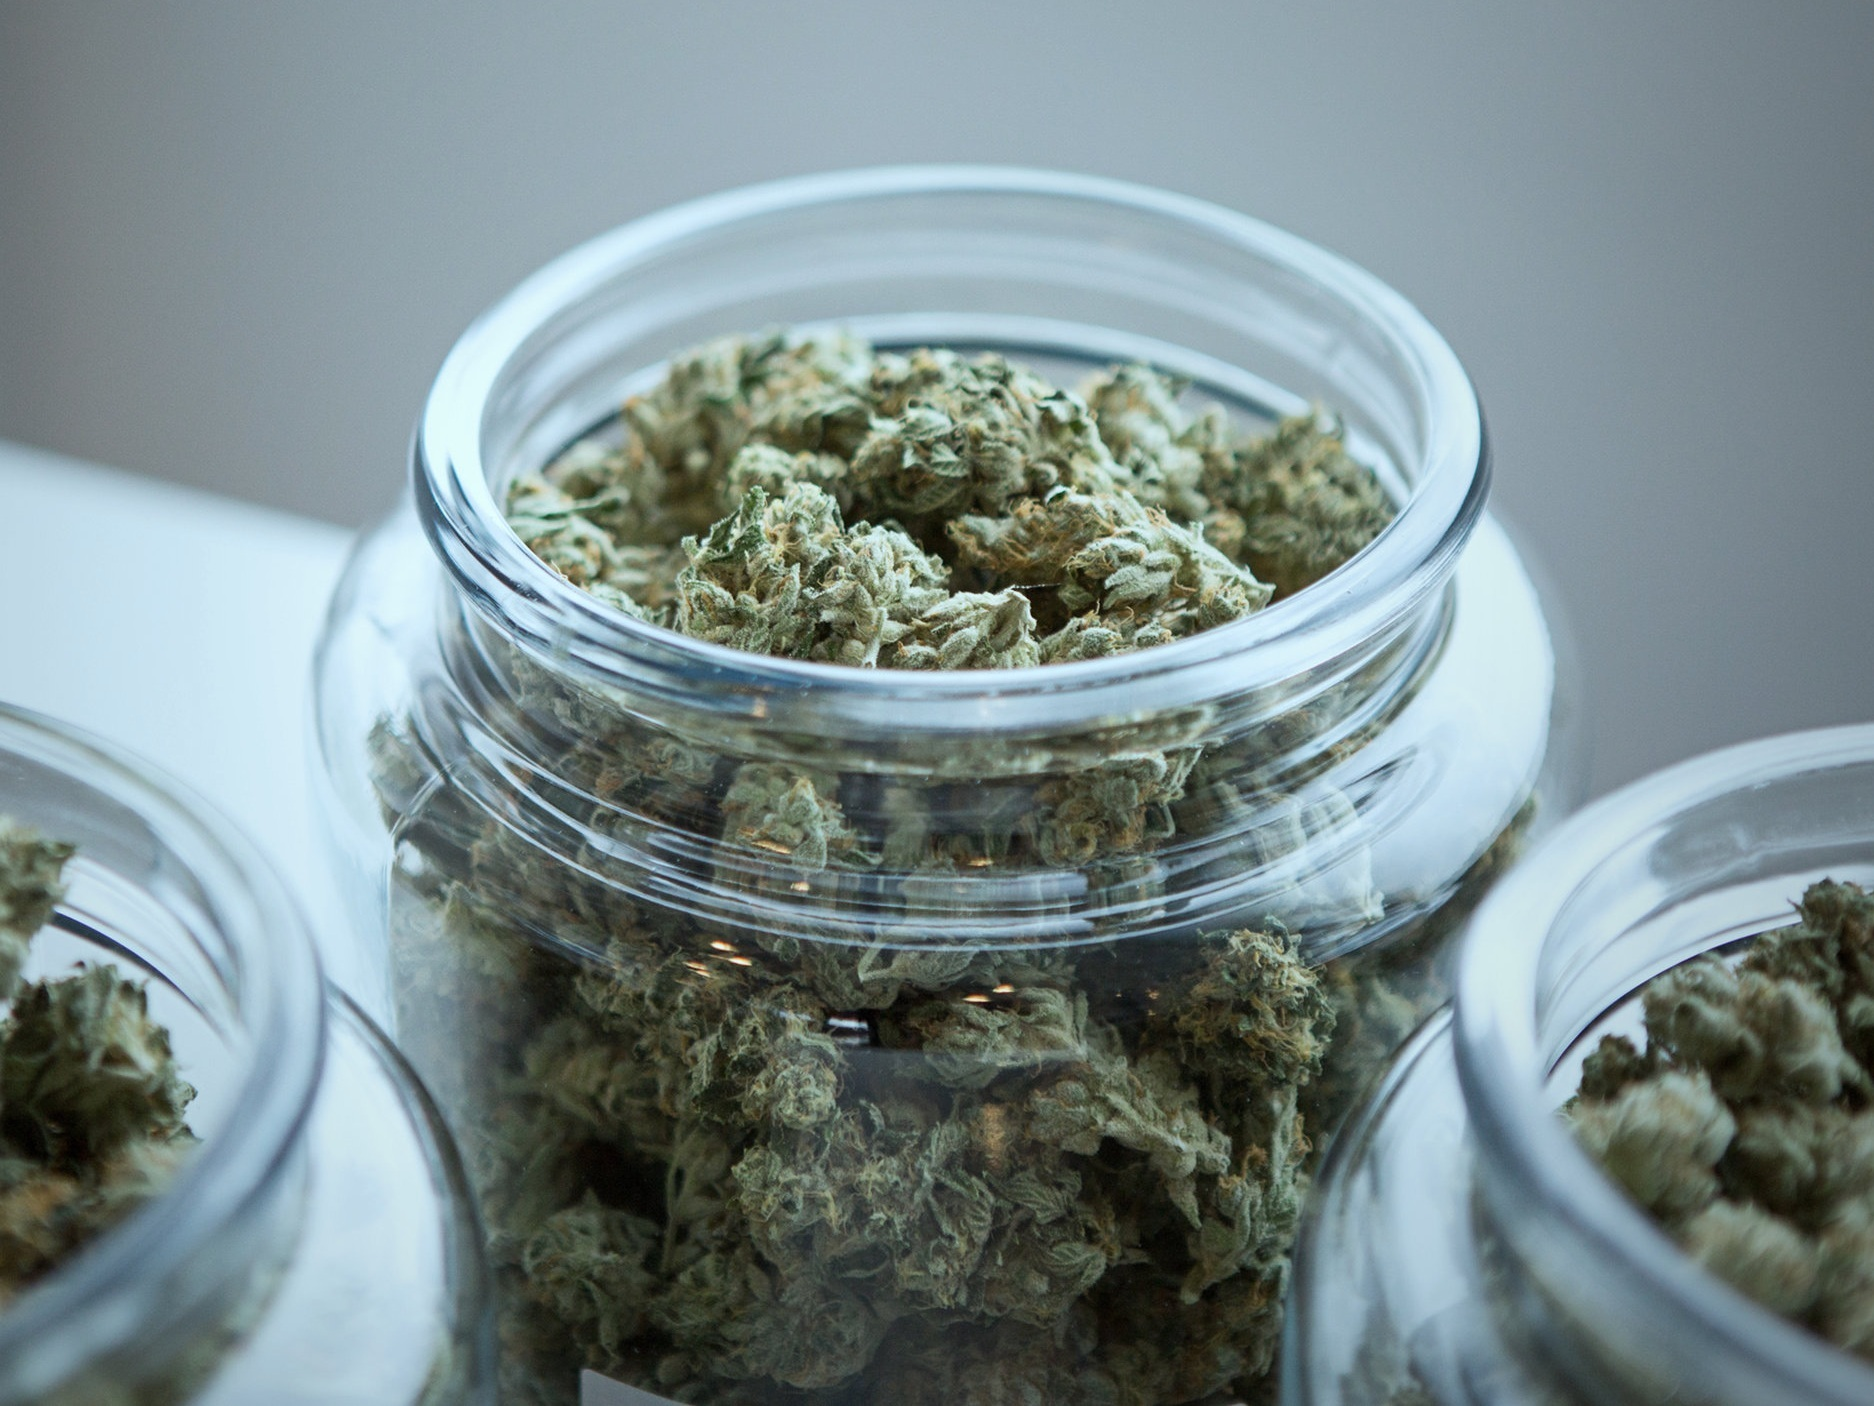 #1 Use a mason jar - Mason jars are one of the cheapest and most effective ways to store your cannabis. It protects bud from air exposure and preserves the taste.